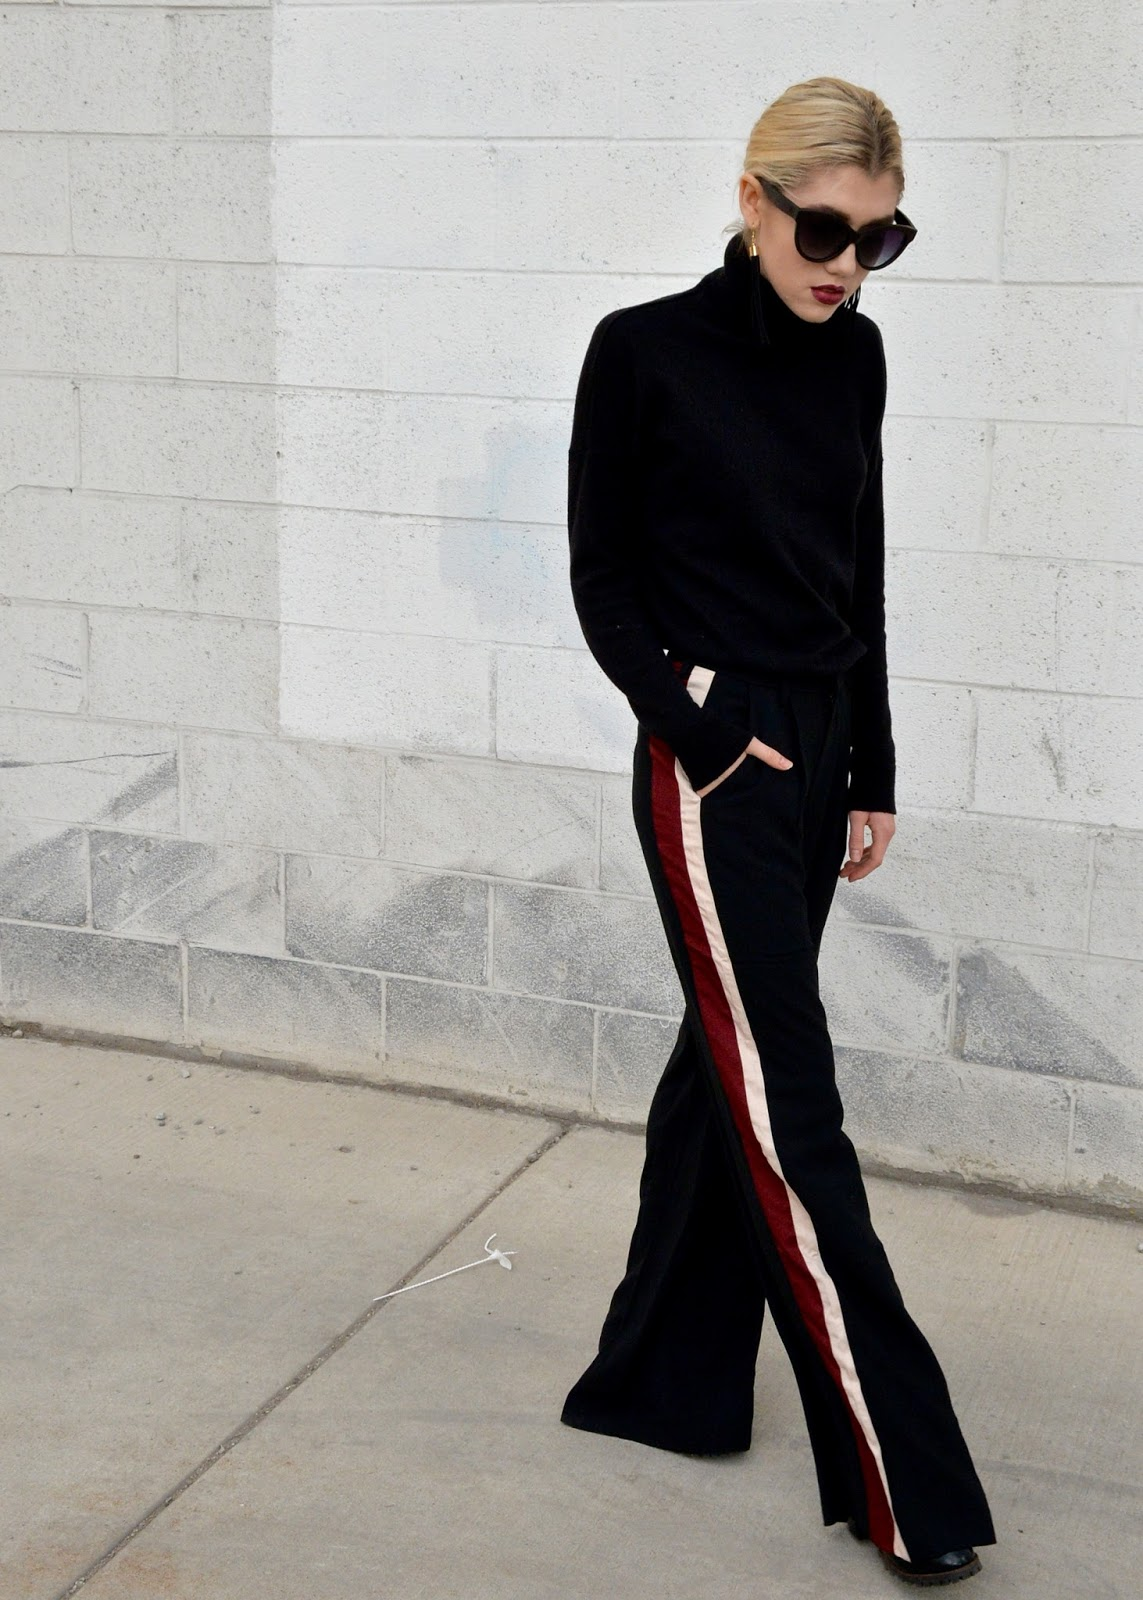 Walking in wide-leg pants with an all black outfit.